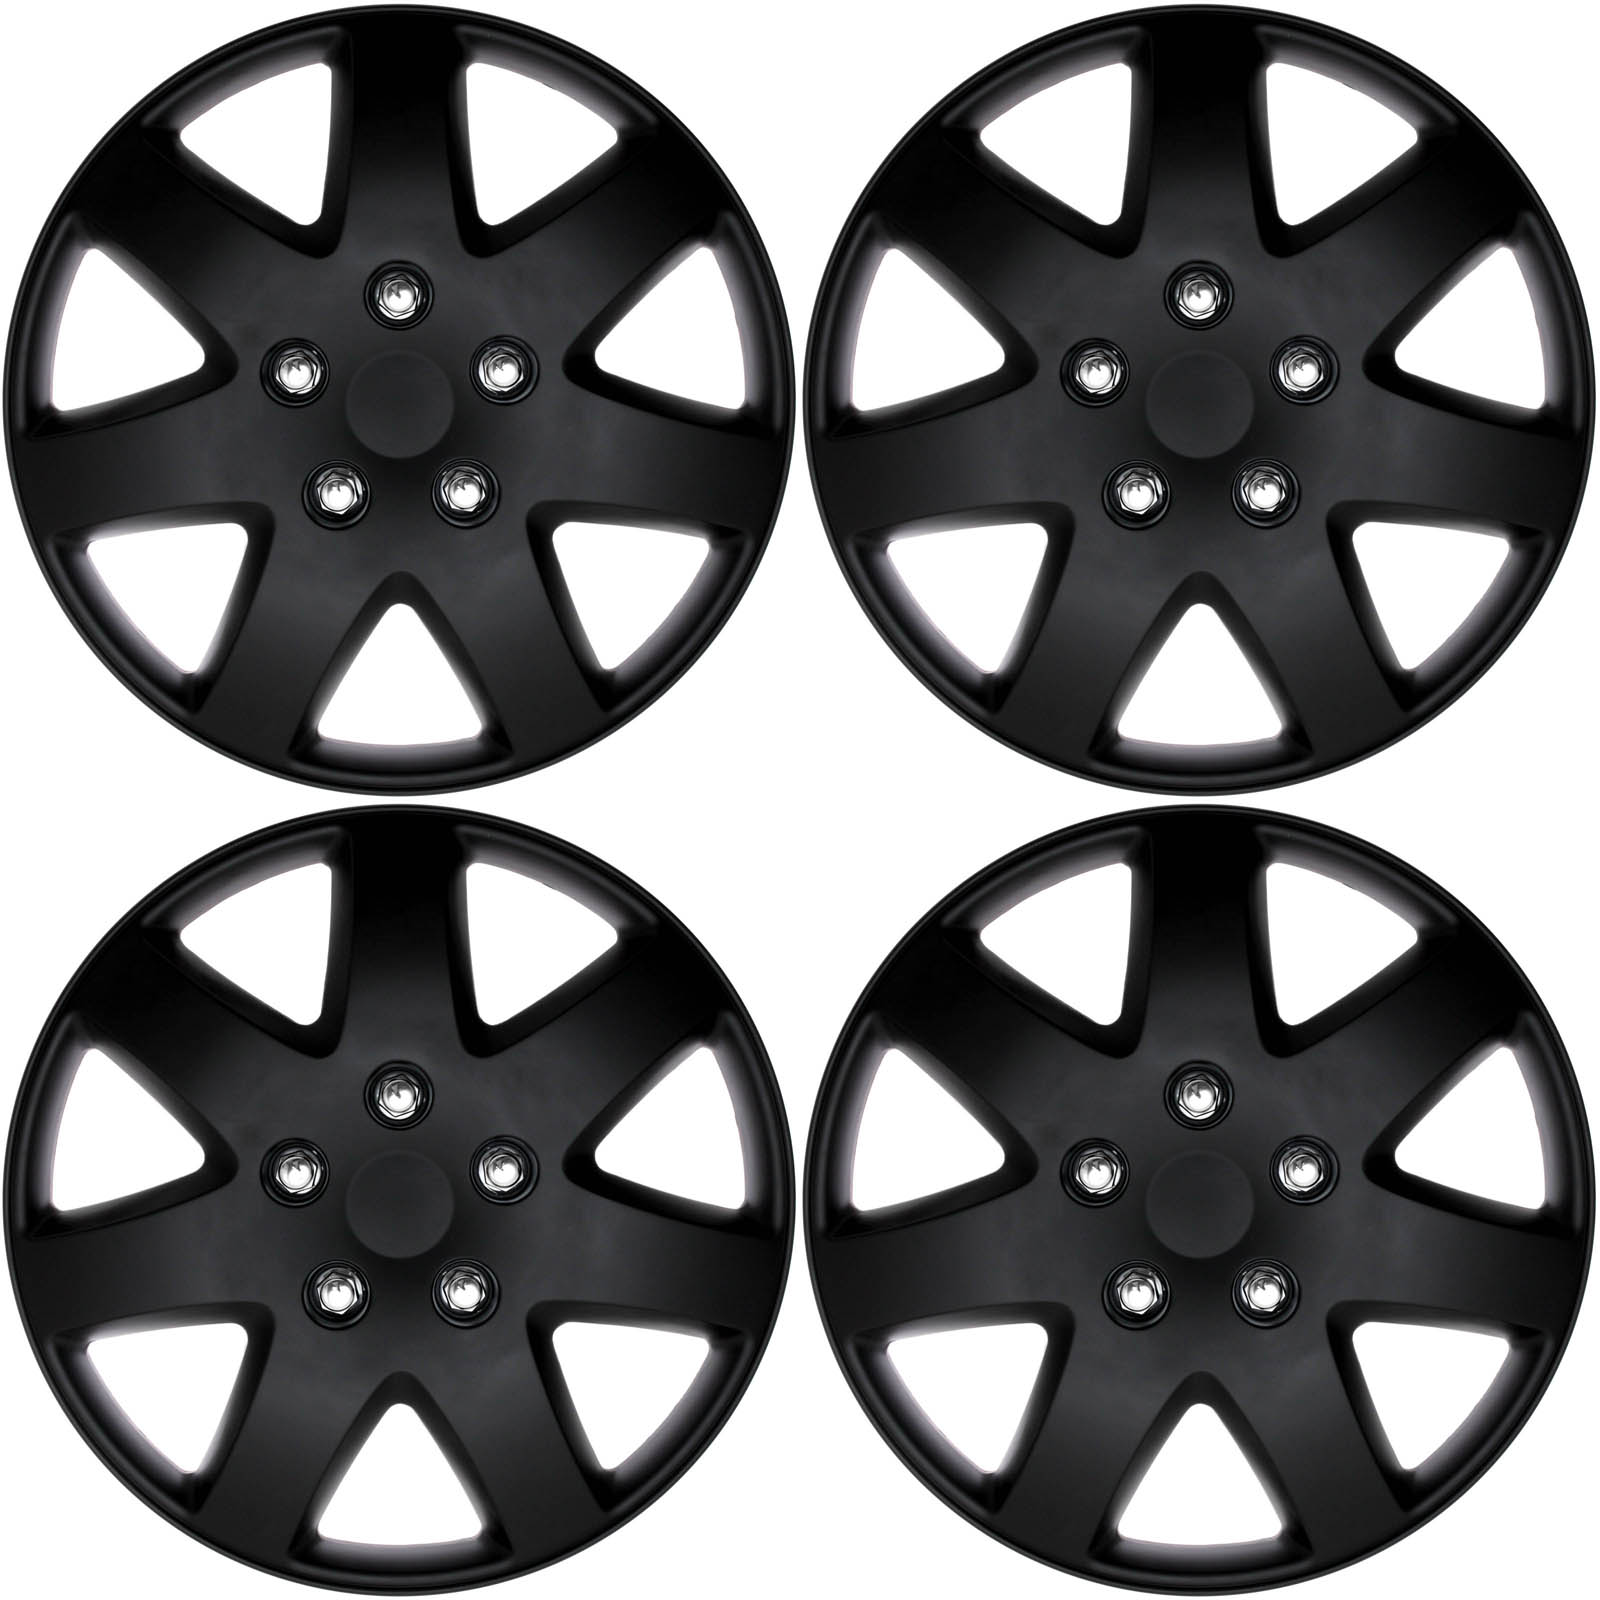 4 pc set of 16 matte black hub caps rim cover for oem steel wheel 1967 Ford Mustang Hubcaps details about 4 pc set of 16 matte black hub caps rim cover for oem steel wheel covers cap